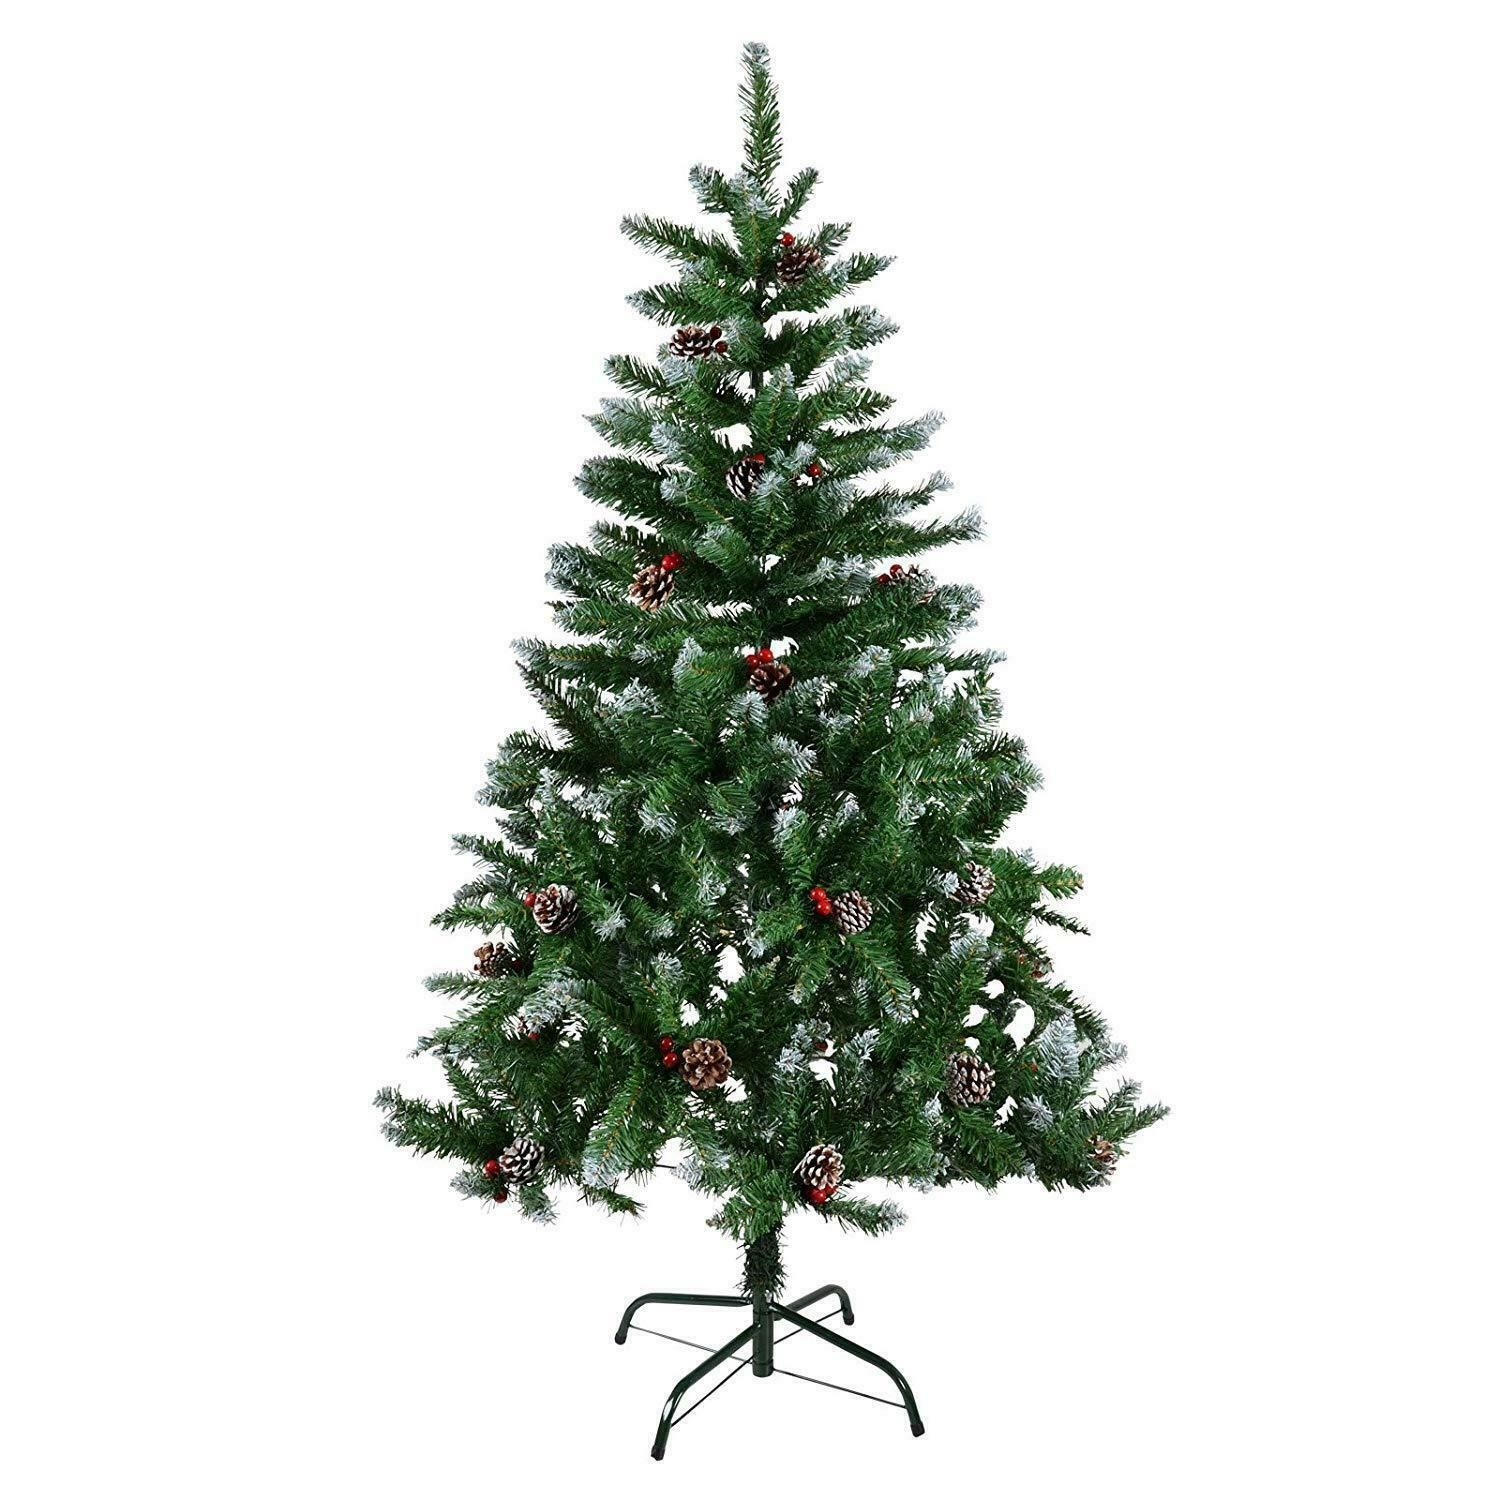 6ft Snow Tipped Red Berries Pine Cone Christmas Tree Traditional Xmas Decoration Ebay Pine Cone Christmas Tree Cone Christmas Trees Xmas Decorations